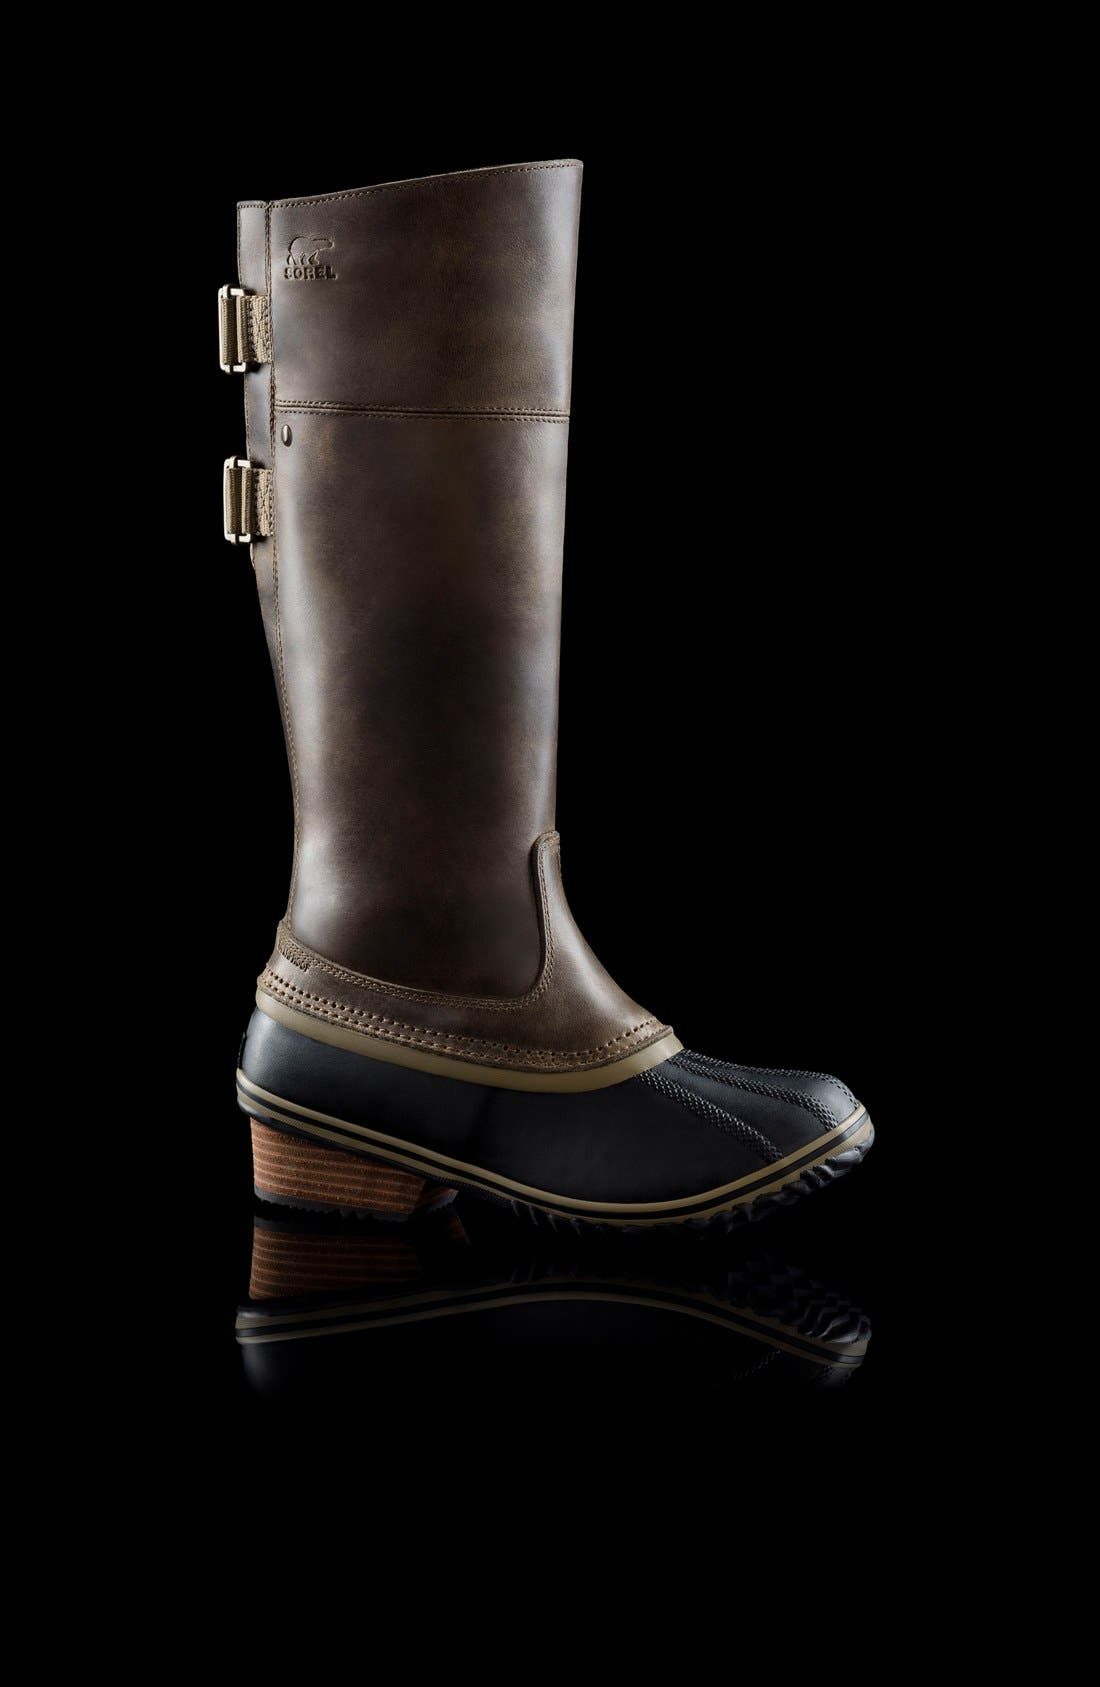 'Slimpack II' Waterproof Riding Boot,                             Alternate thumbnail 6, color,                             Dark Fog